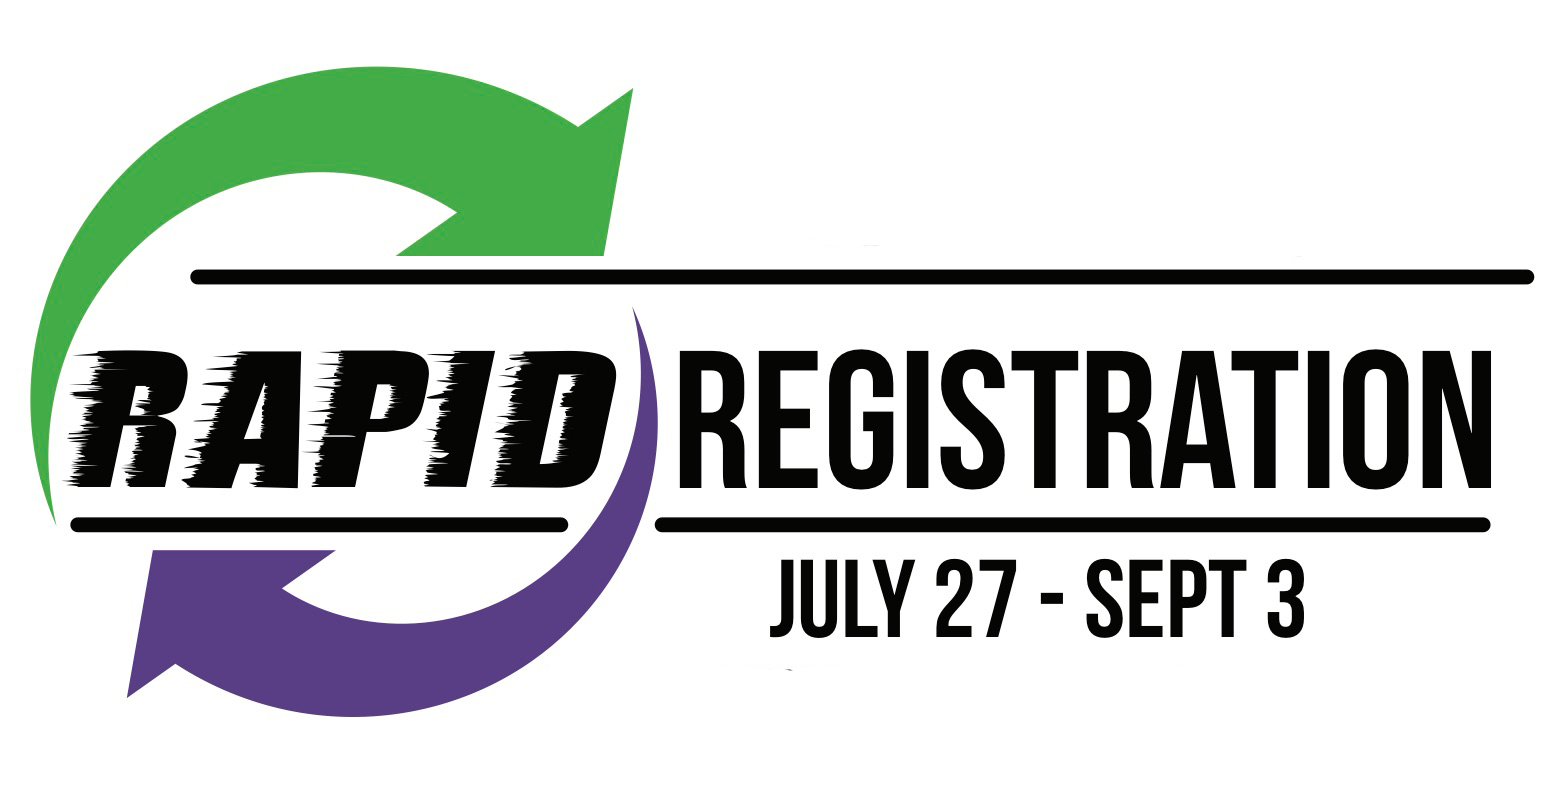 Rapid Registration is happening July 27 through September 3. Click for more information.